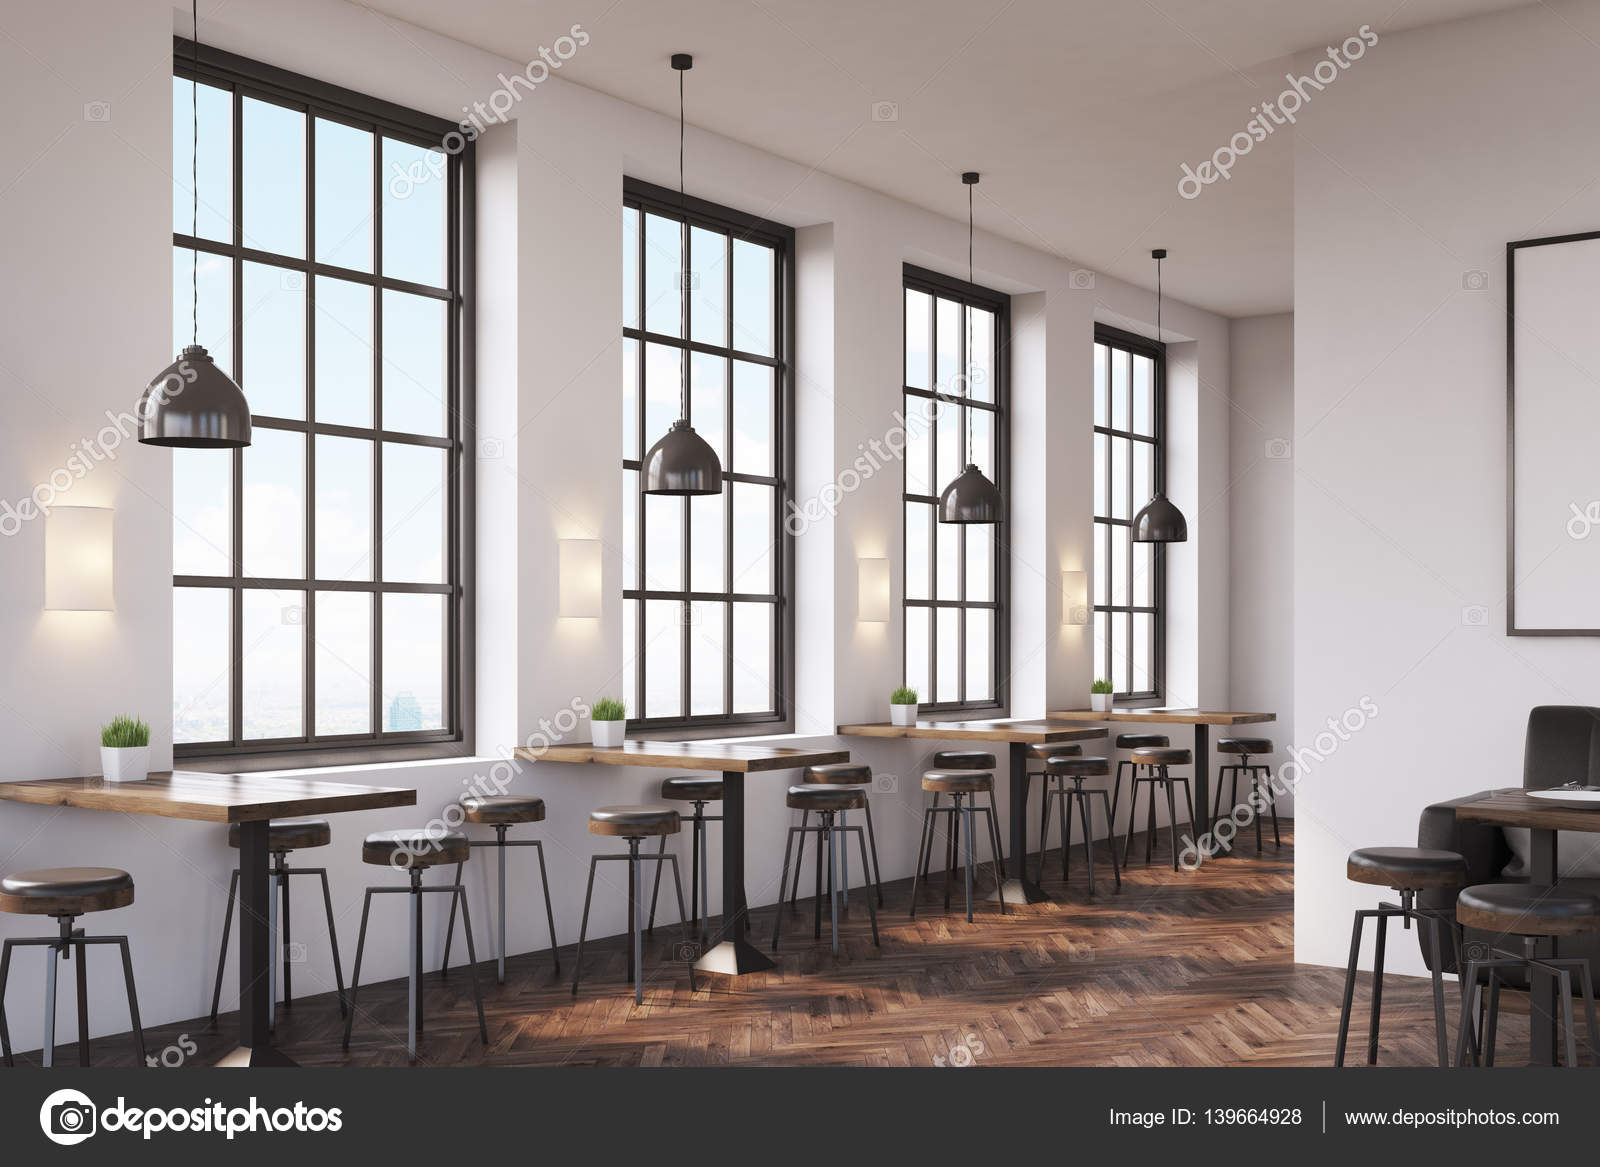 Coffee Shop Interior With A Large Sofa Near A White Wall A Row Of Tables With